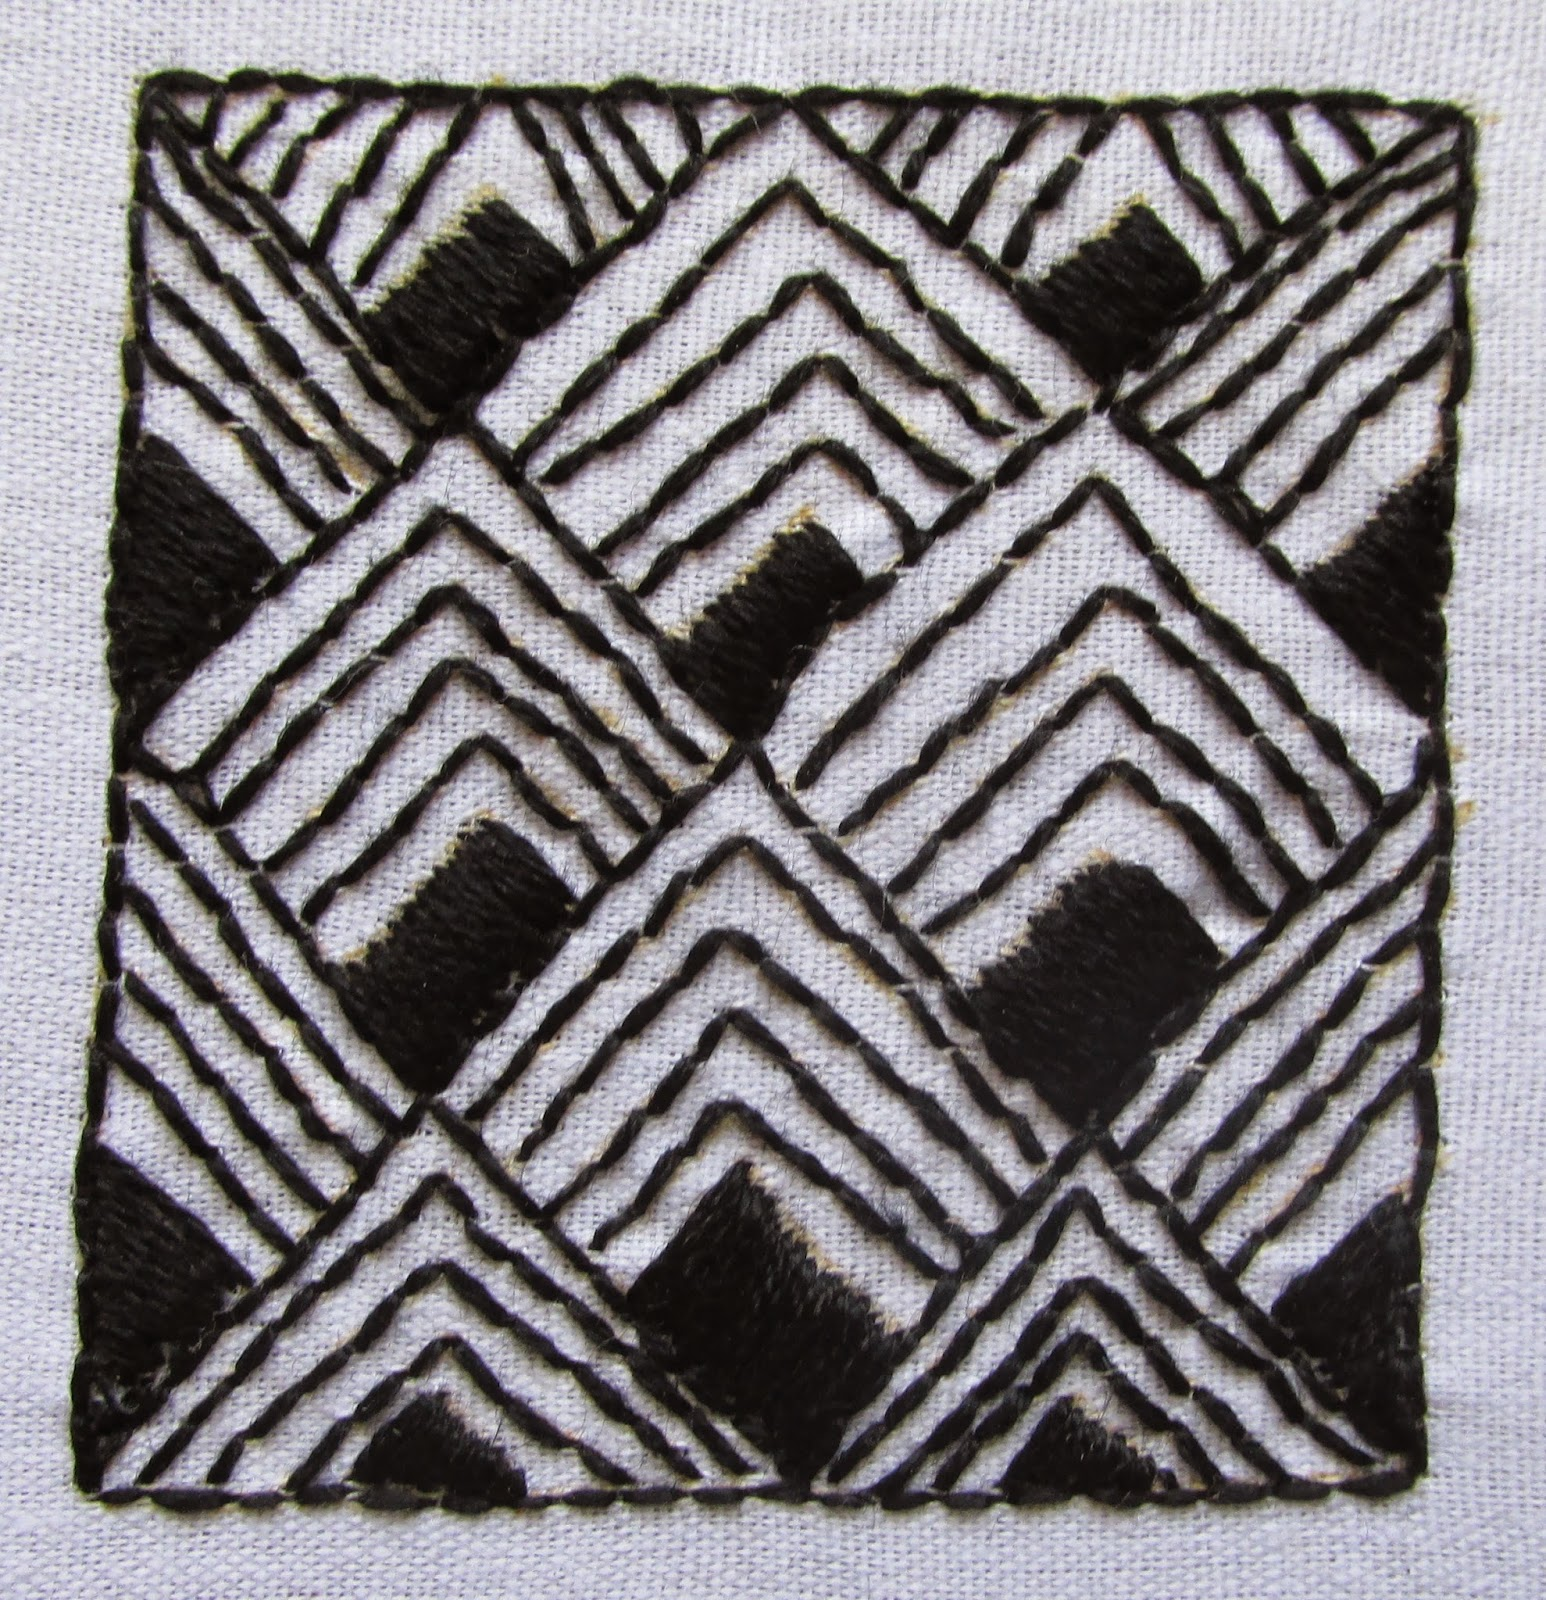 My craft works zentangle a new find